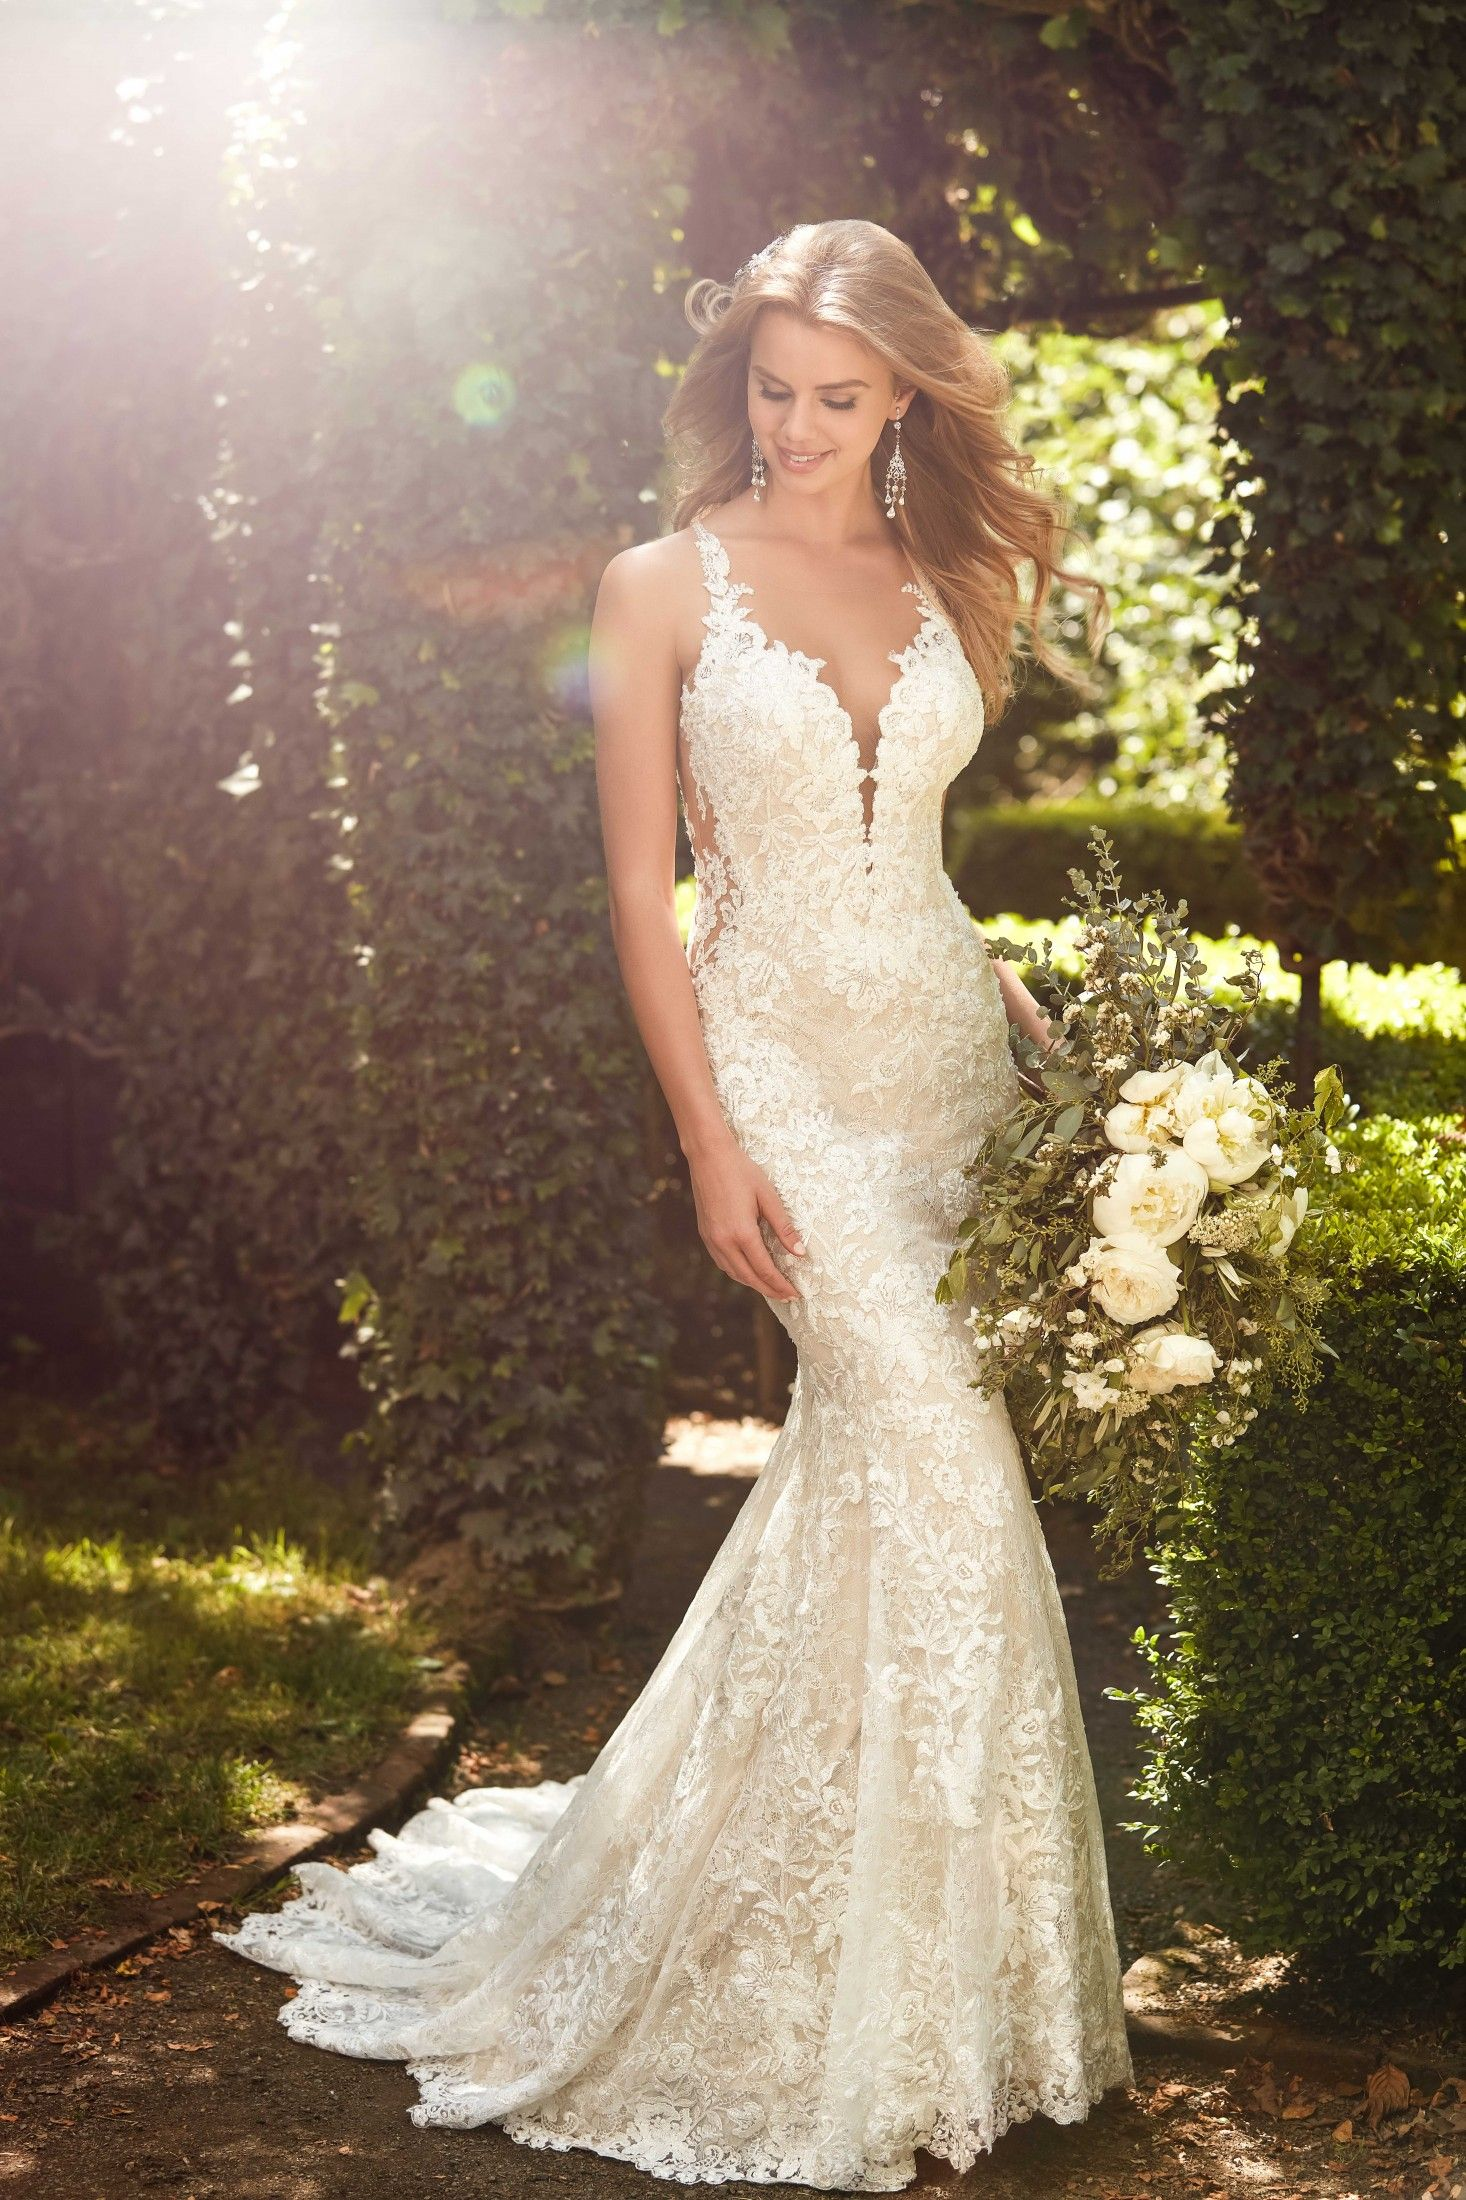 Ad canut decide on a style click to find your dream wedding dress